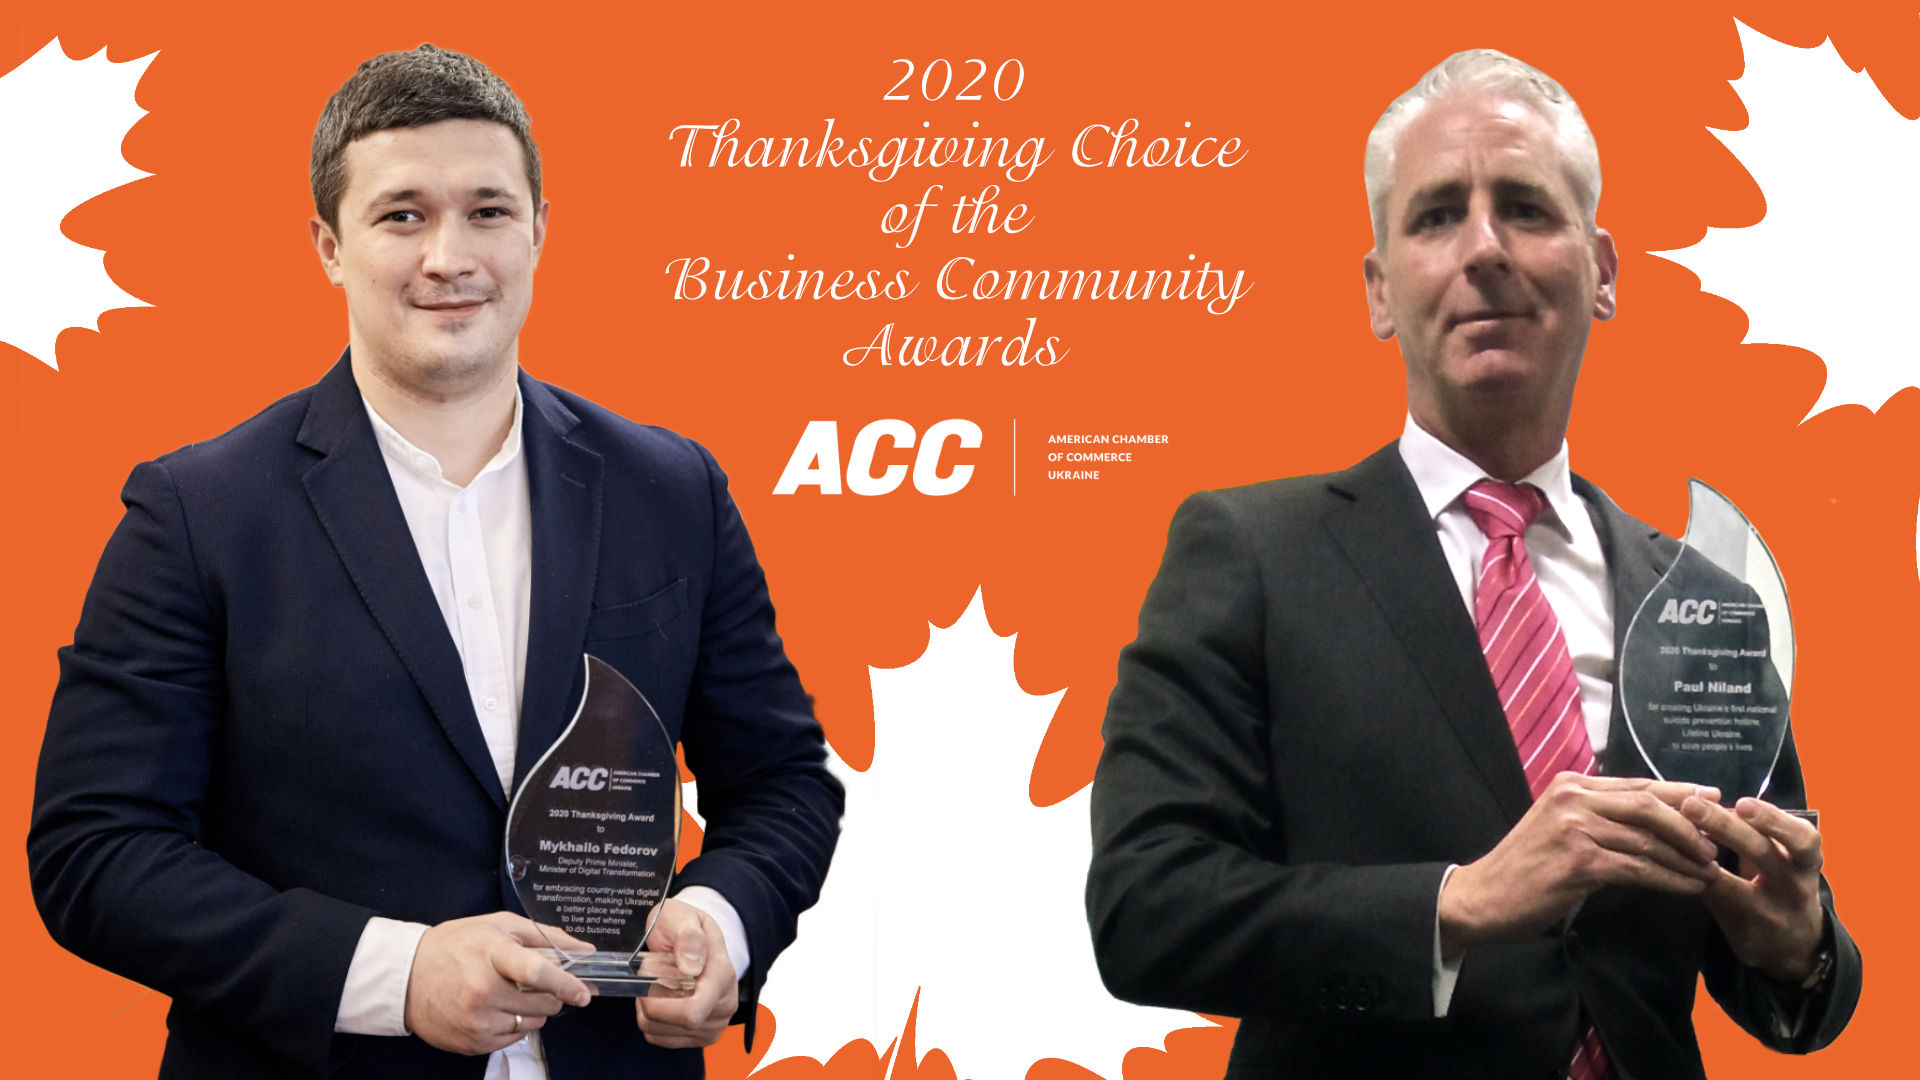 American Chamber of Commerce Presents the 2020 Thanksgiving Awards  for Digitalizing Ukraine's Economy and Saving People's Lives